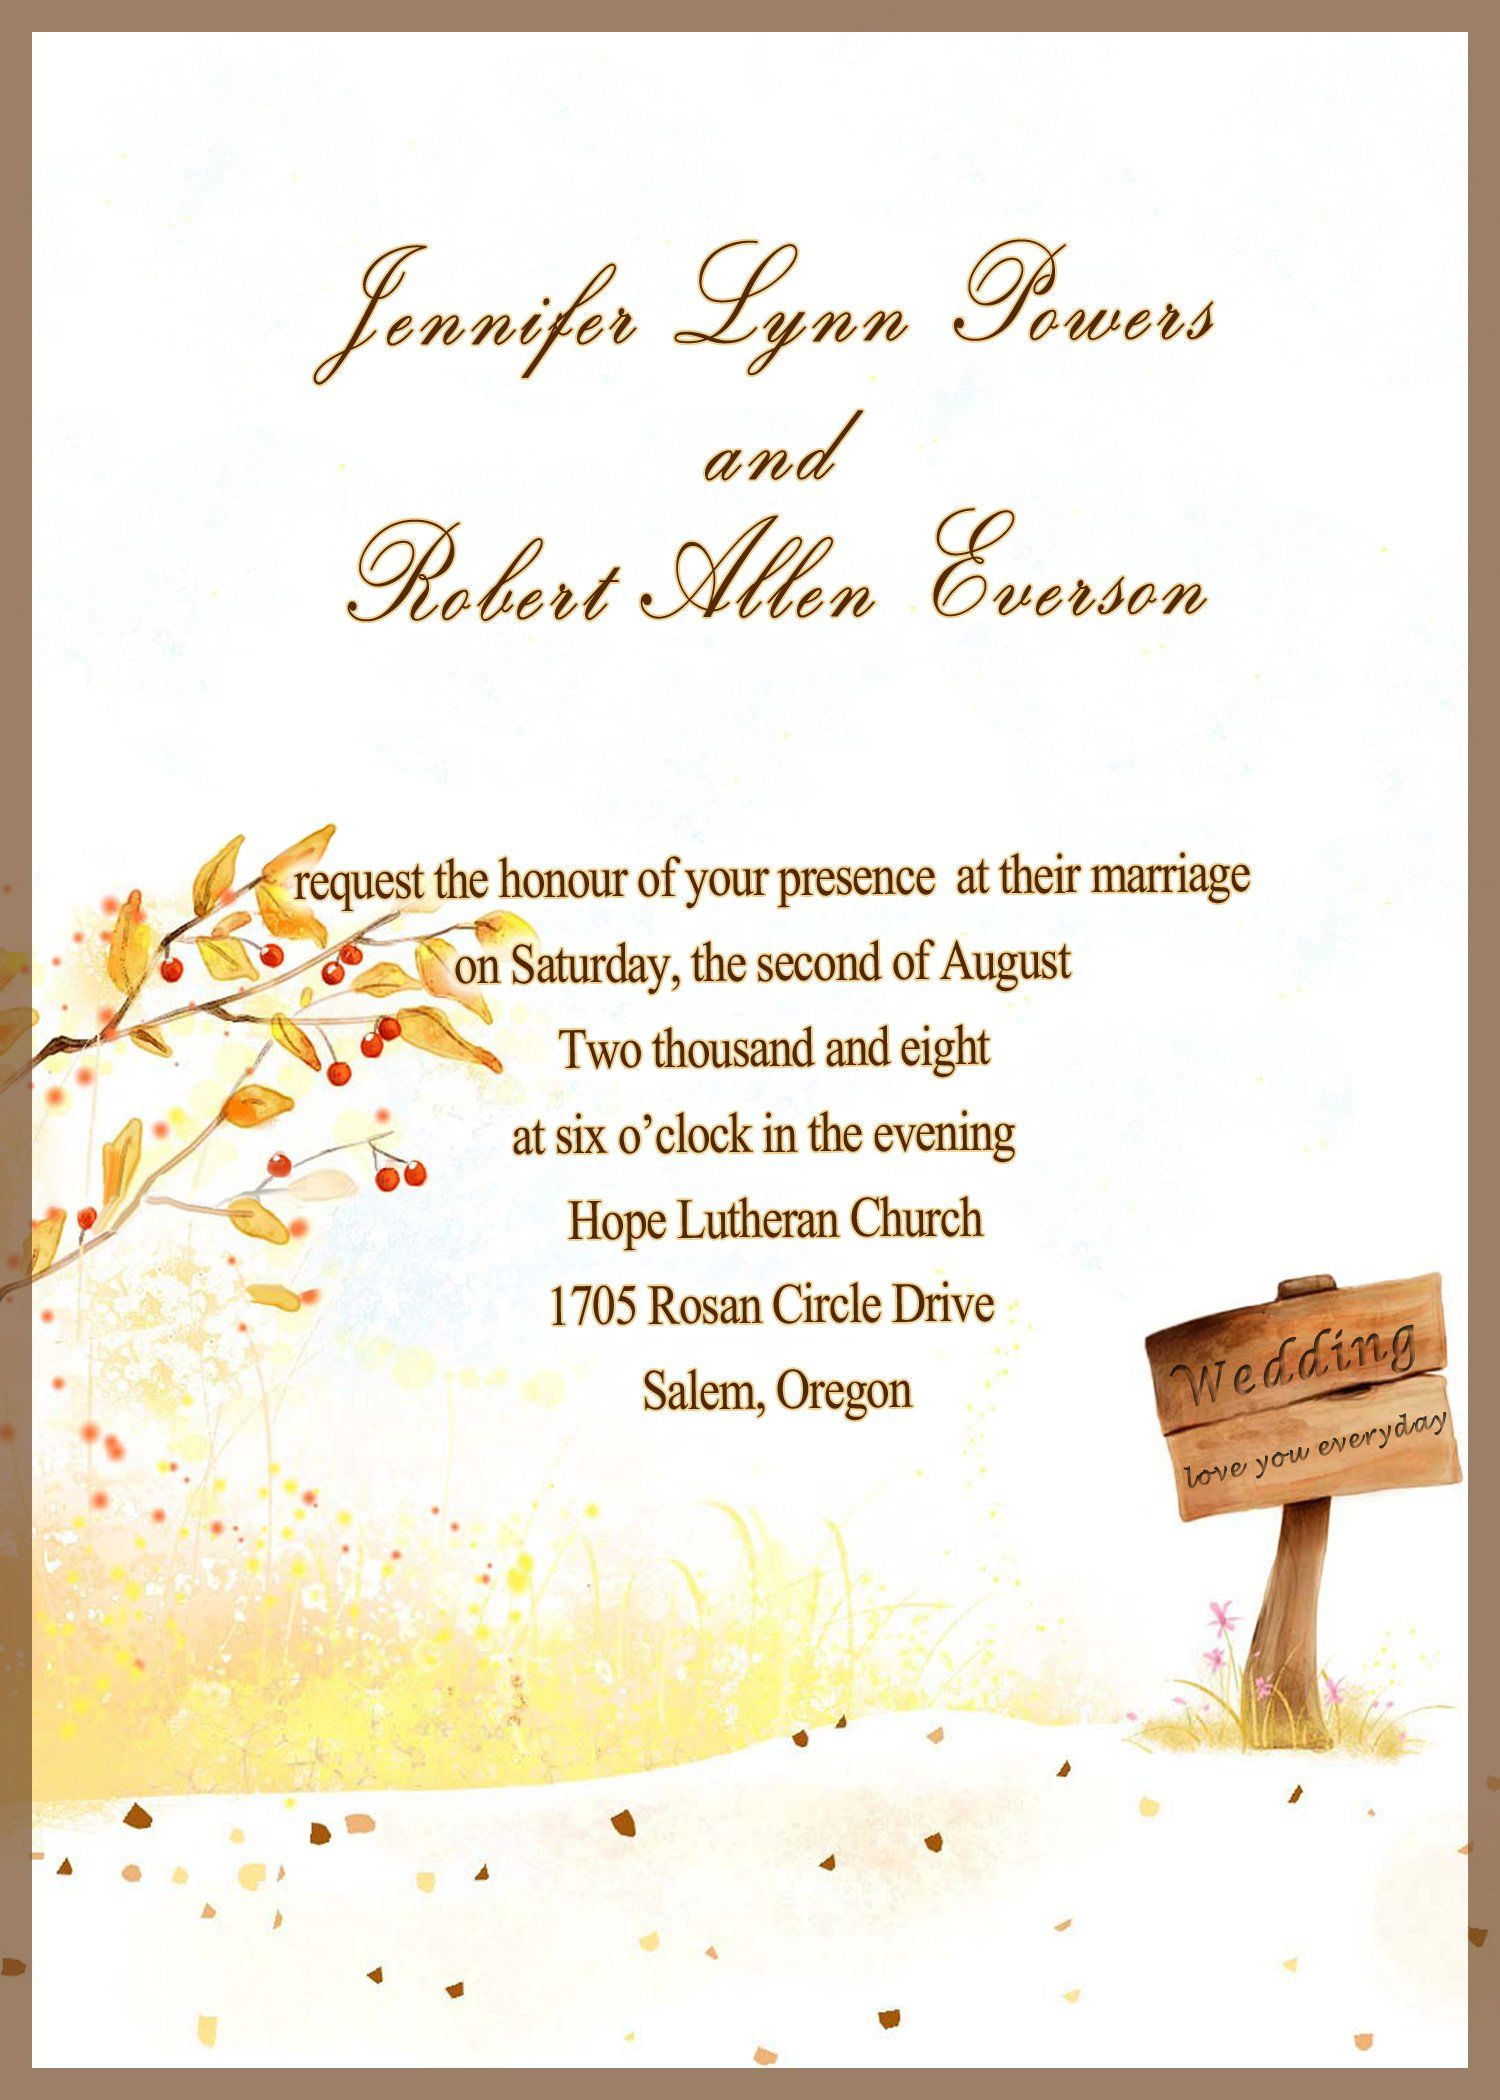 marriage-invitation-cards-for-friends | wedding invitations ...